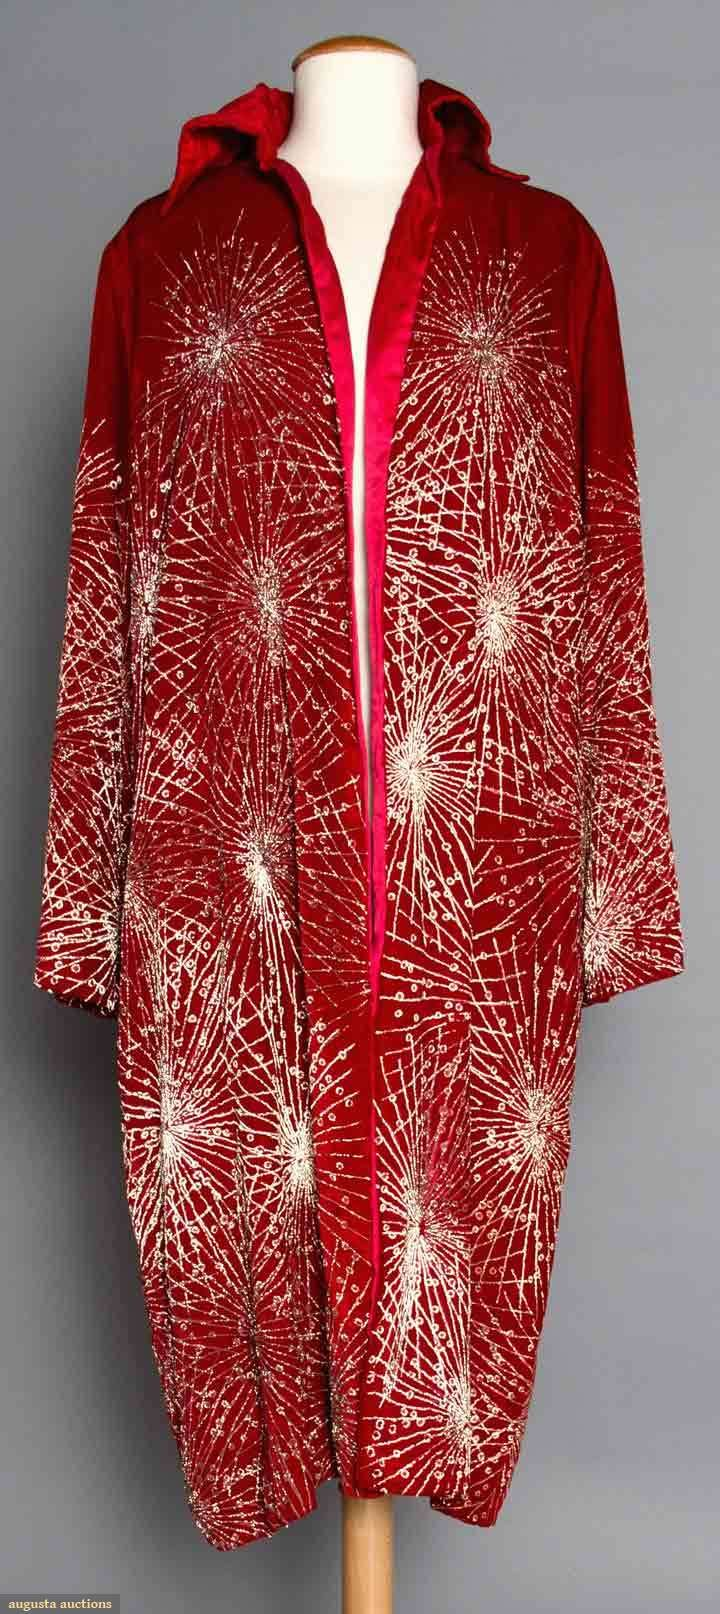 """RED VELVET OPERA COAT, 1920s  Painted w/ irridescent gold starburst pattern, tubular long sleeves, """"Ann Waller Farrell Newport, Rhode Island & Miami Beach Florida"""" label, cherry red silk lining, L 42.5"""", (some paint worn off, collar needs stitching in spots) very good."""